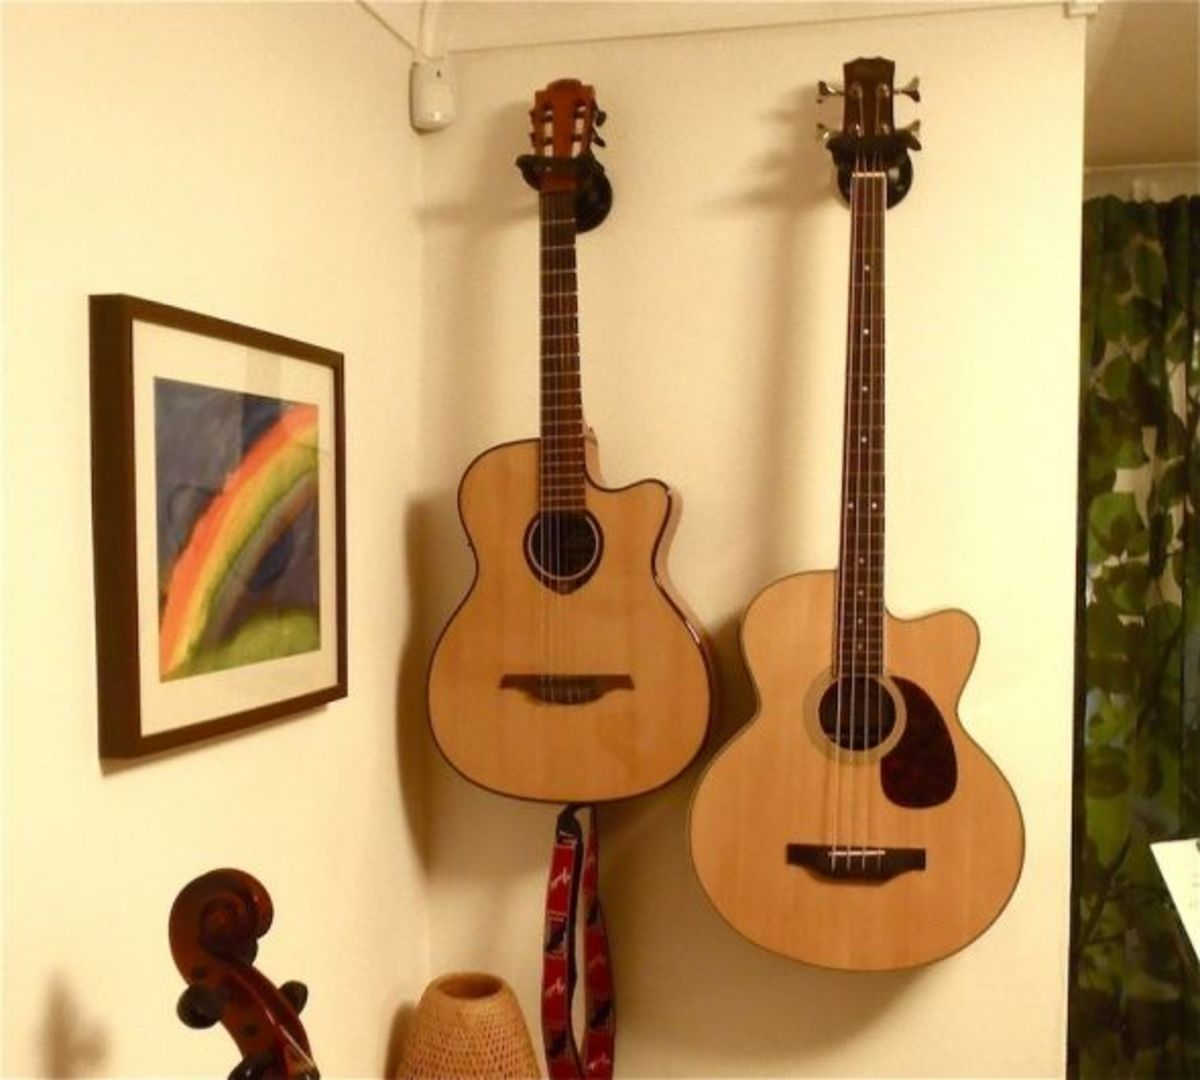 These are my son's latest guitars. A Lag acoustic - electric and a Brunswick Bass Guitar.